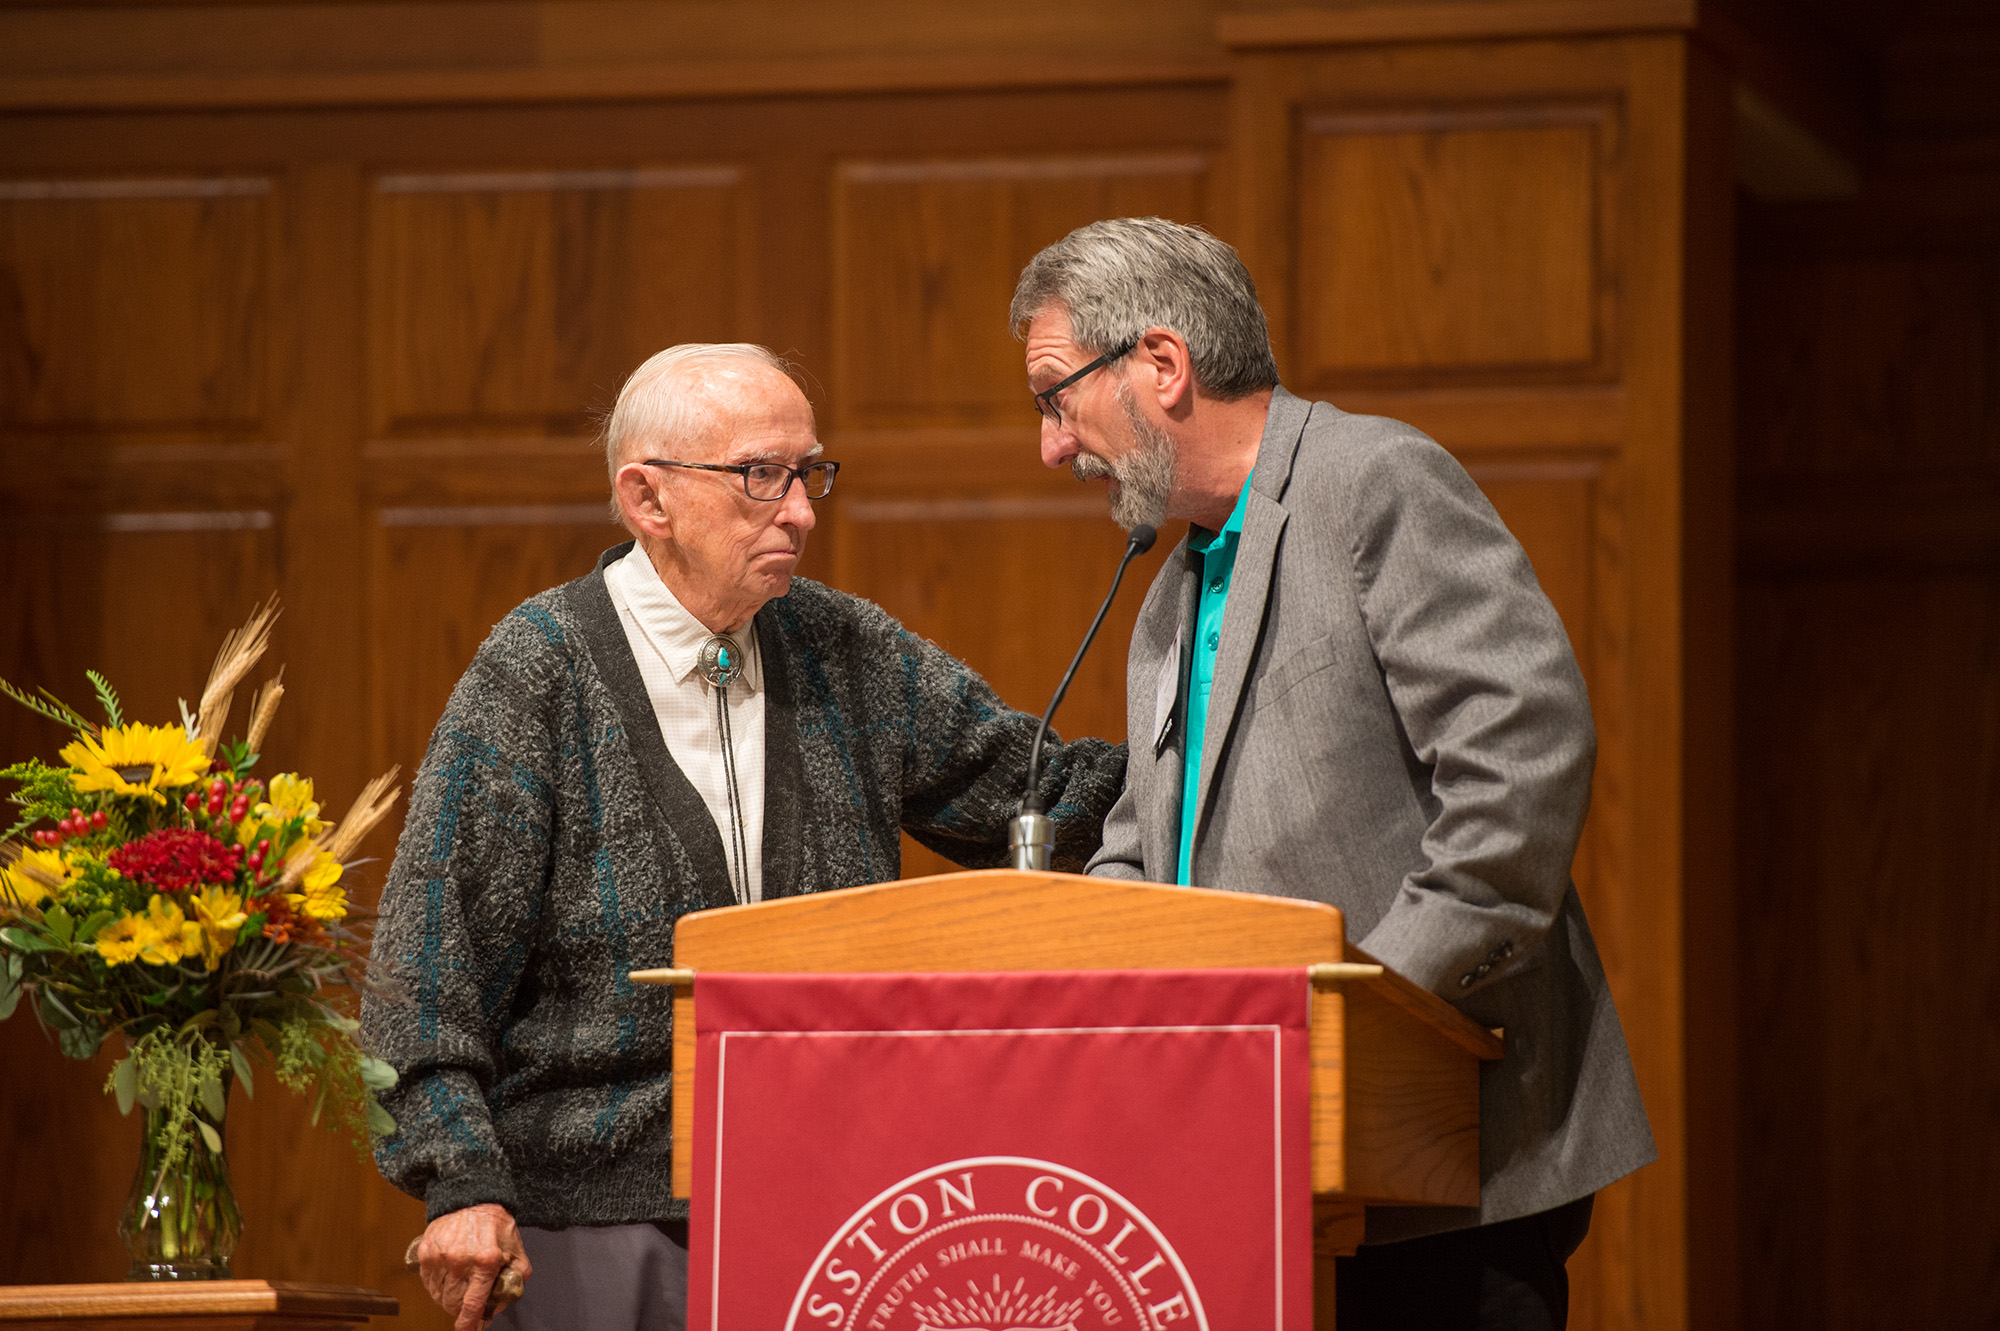 Evan Oswald '48, former faculty and John Sharp '73, former faculty speak at the 60 years of Lark Athletics event.